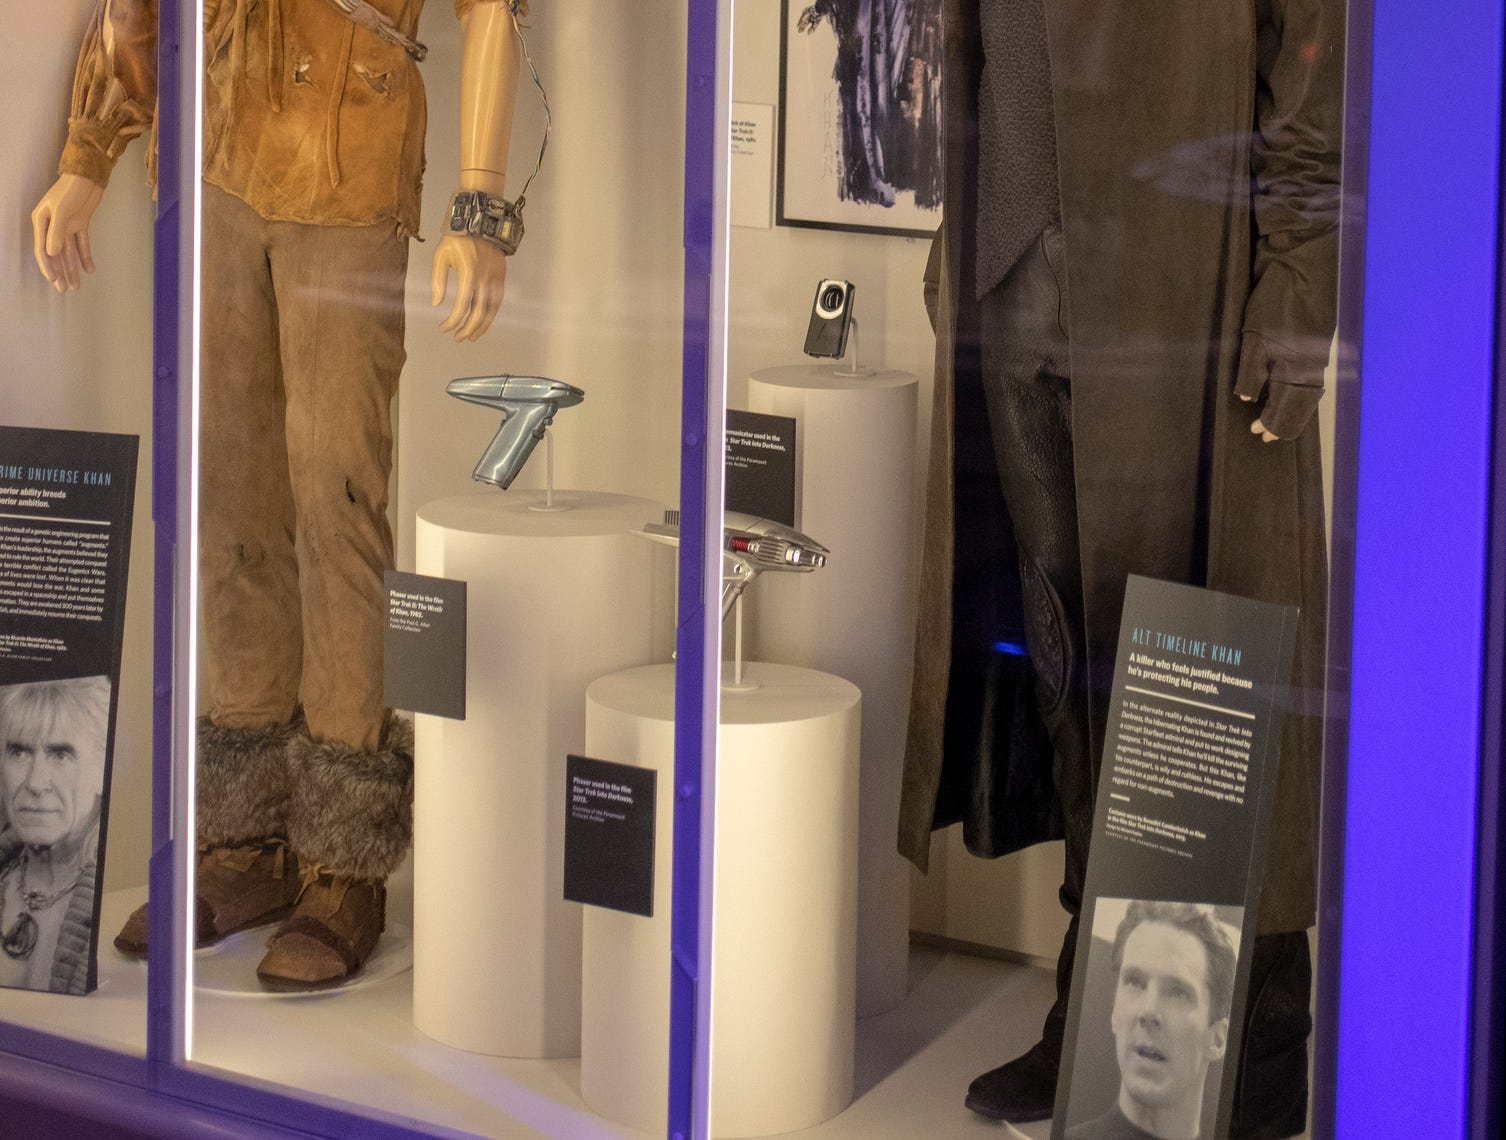 """Outfits worn by the notorious character Khan in """"Star Trek II: The Wrath of Khan"""" (left) and """"Star Trek Into Darkness"""" are seen at The Children's Museum of Indianapolis, Wednesday, Jan. 23, 2019. The """"Star Trek: Exploring New Worlds"""" exhibit is made up of set pieces, ship models and outfits used during various Star Trek shows and movies and is on display at the museum from Feb. 2 through April 7, 2019."""